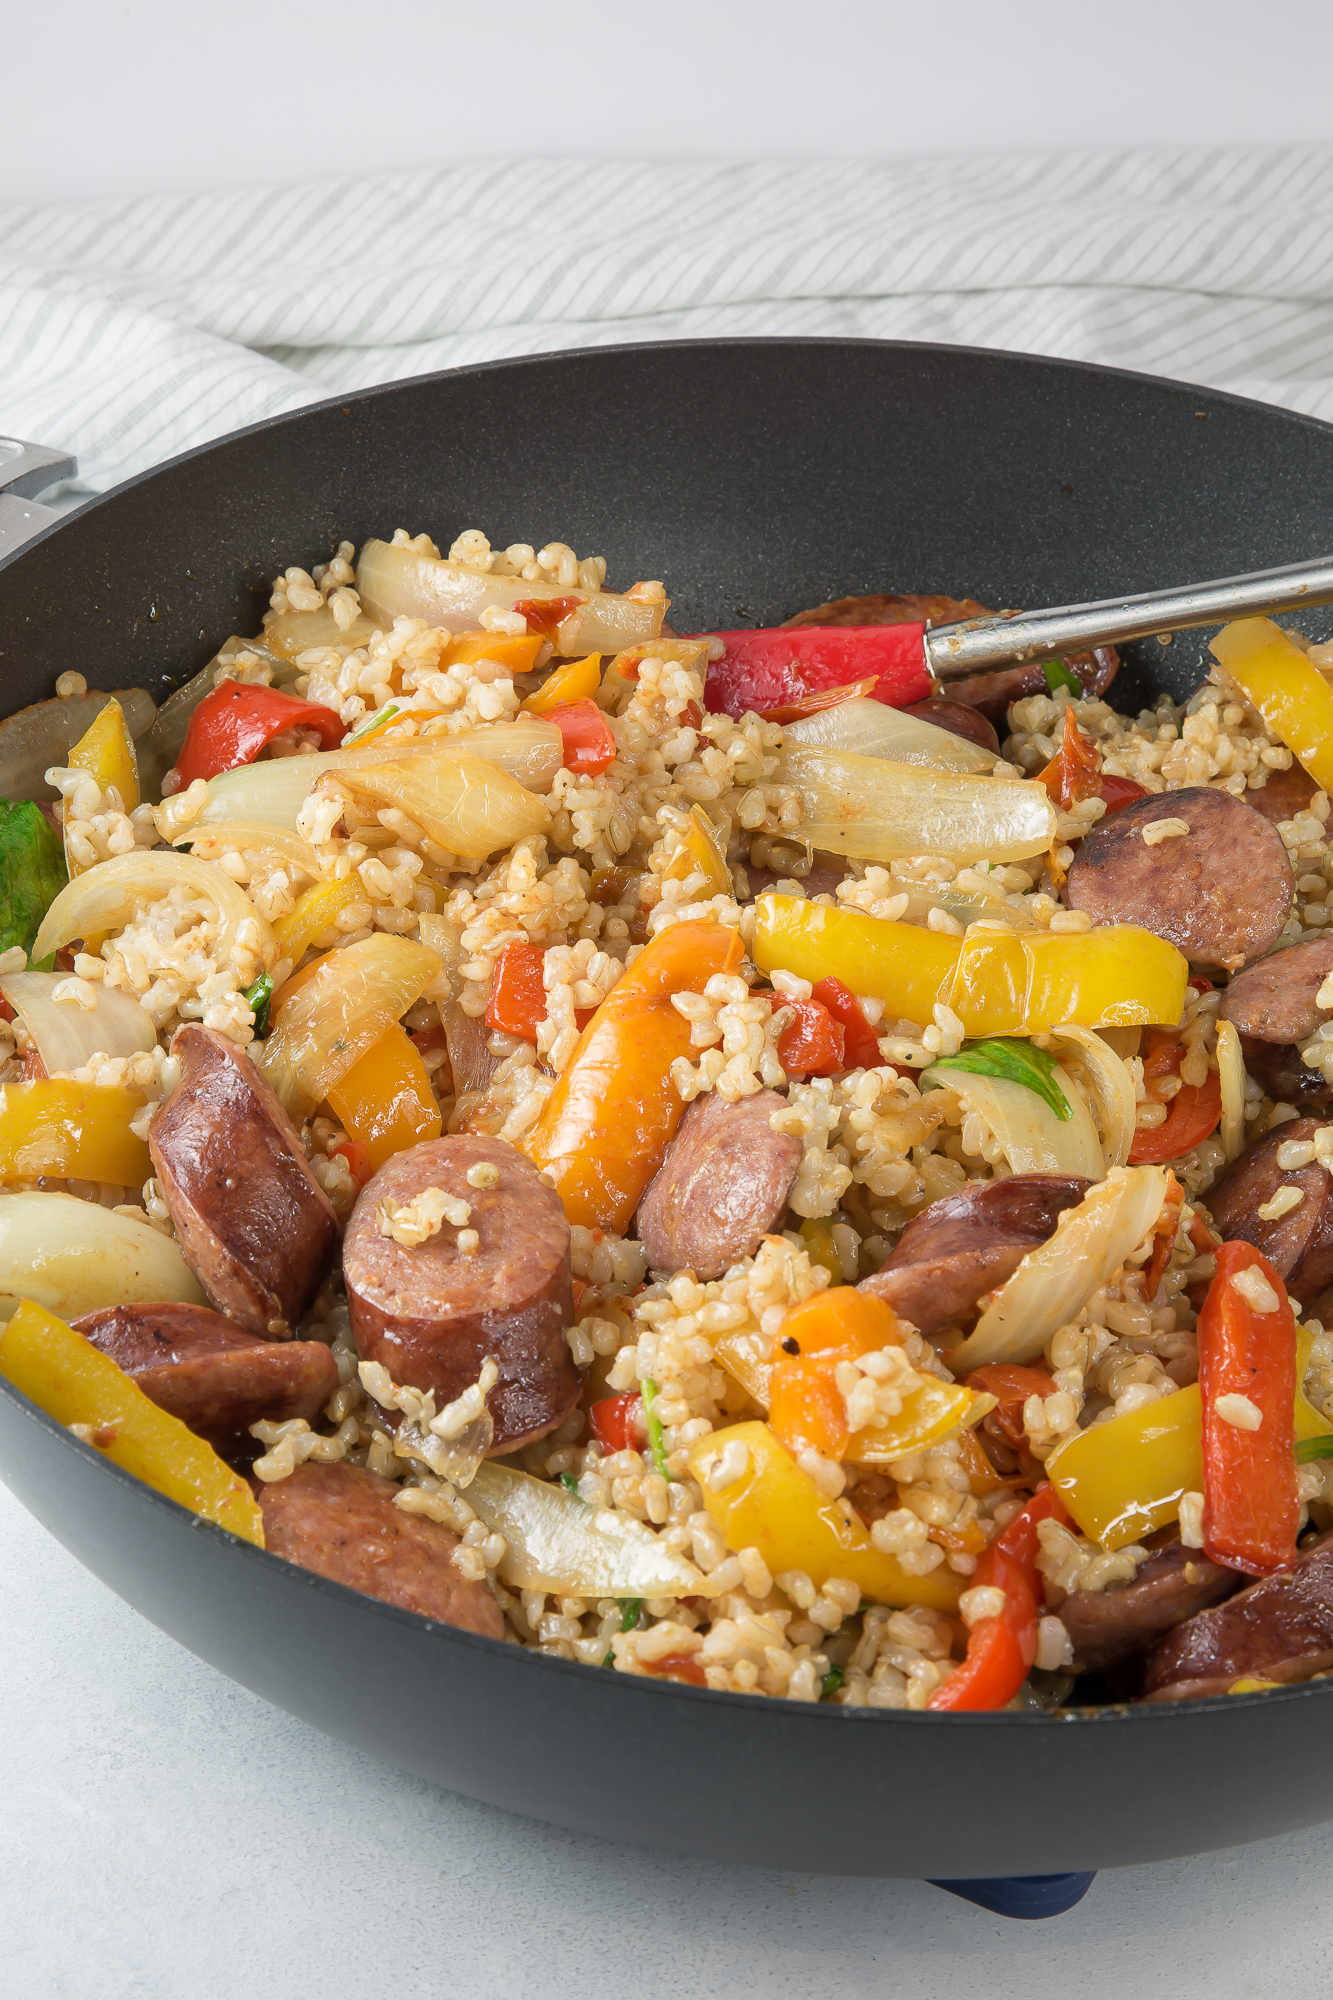 Kielbasa vegetable stir fry recipe easy and quick this 30 minute kielbasa vegetable stir fry recipe easy and quick this 30 minute meal is amazing deliciously plated forumfinder Image collections